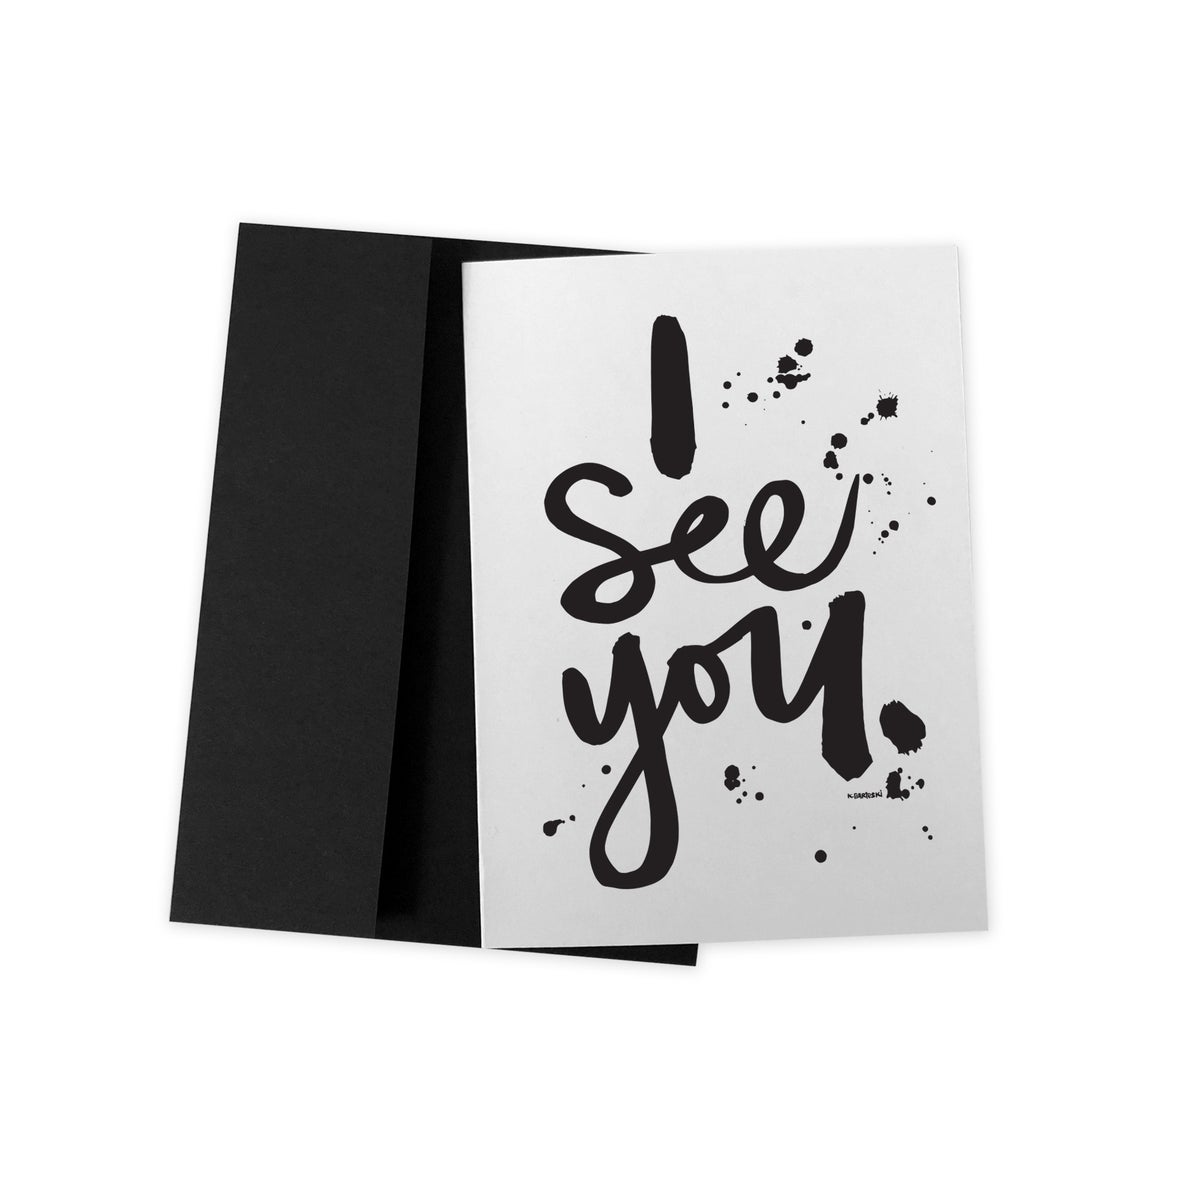 Image of i SEE YOU #kbscript greeting card